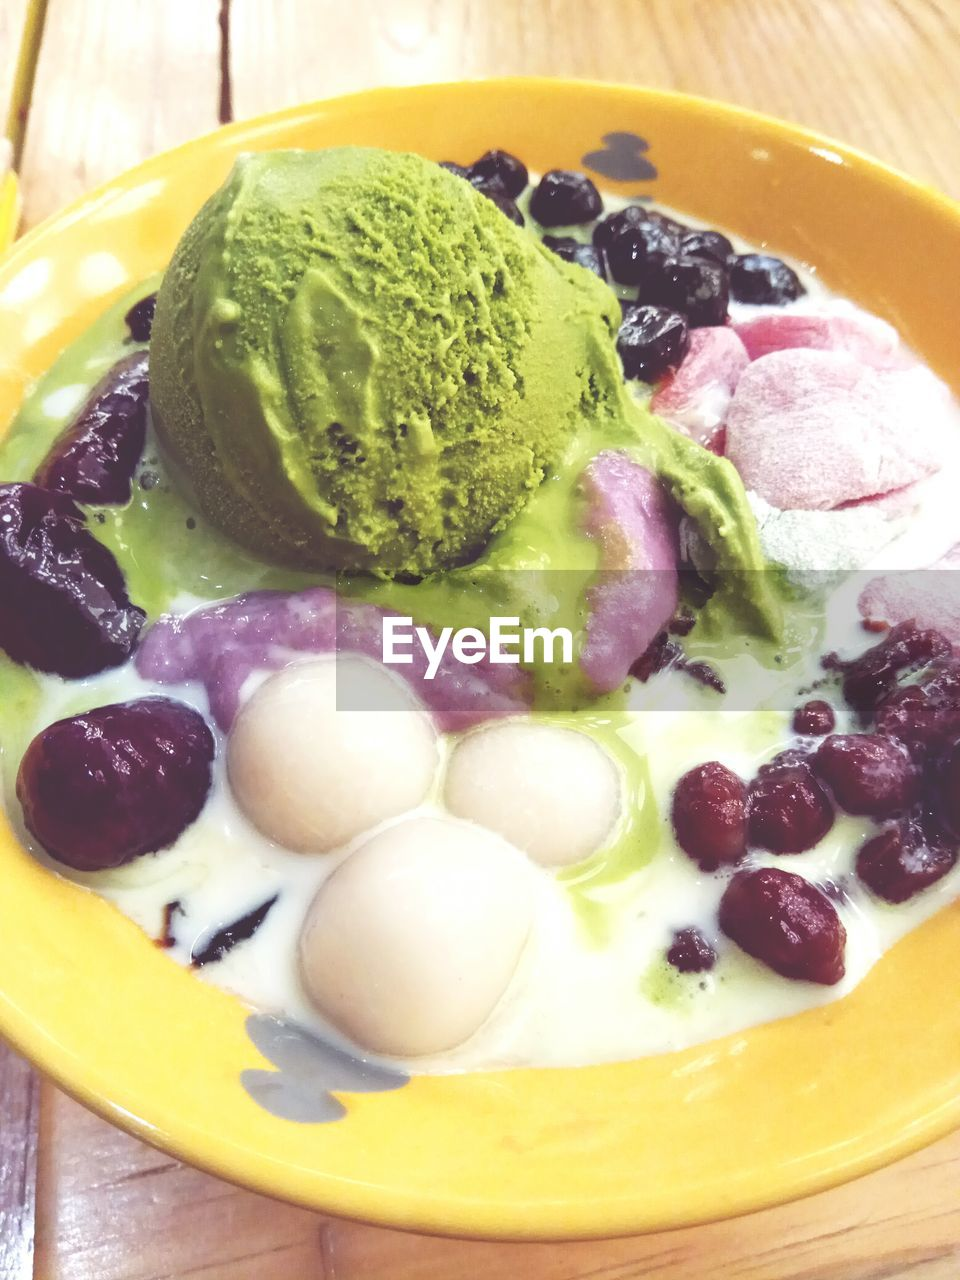 ice cream, food and drink, sweet food, frozen food, food, dessert, freshness, indulgence, still life, temptation, serving size, close-up, ready-to-eat, indoors, no people, scoop shape, gourmet, ice cream sundae, day